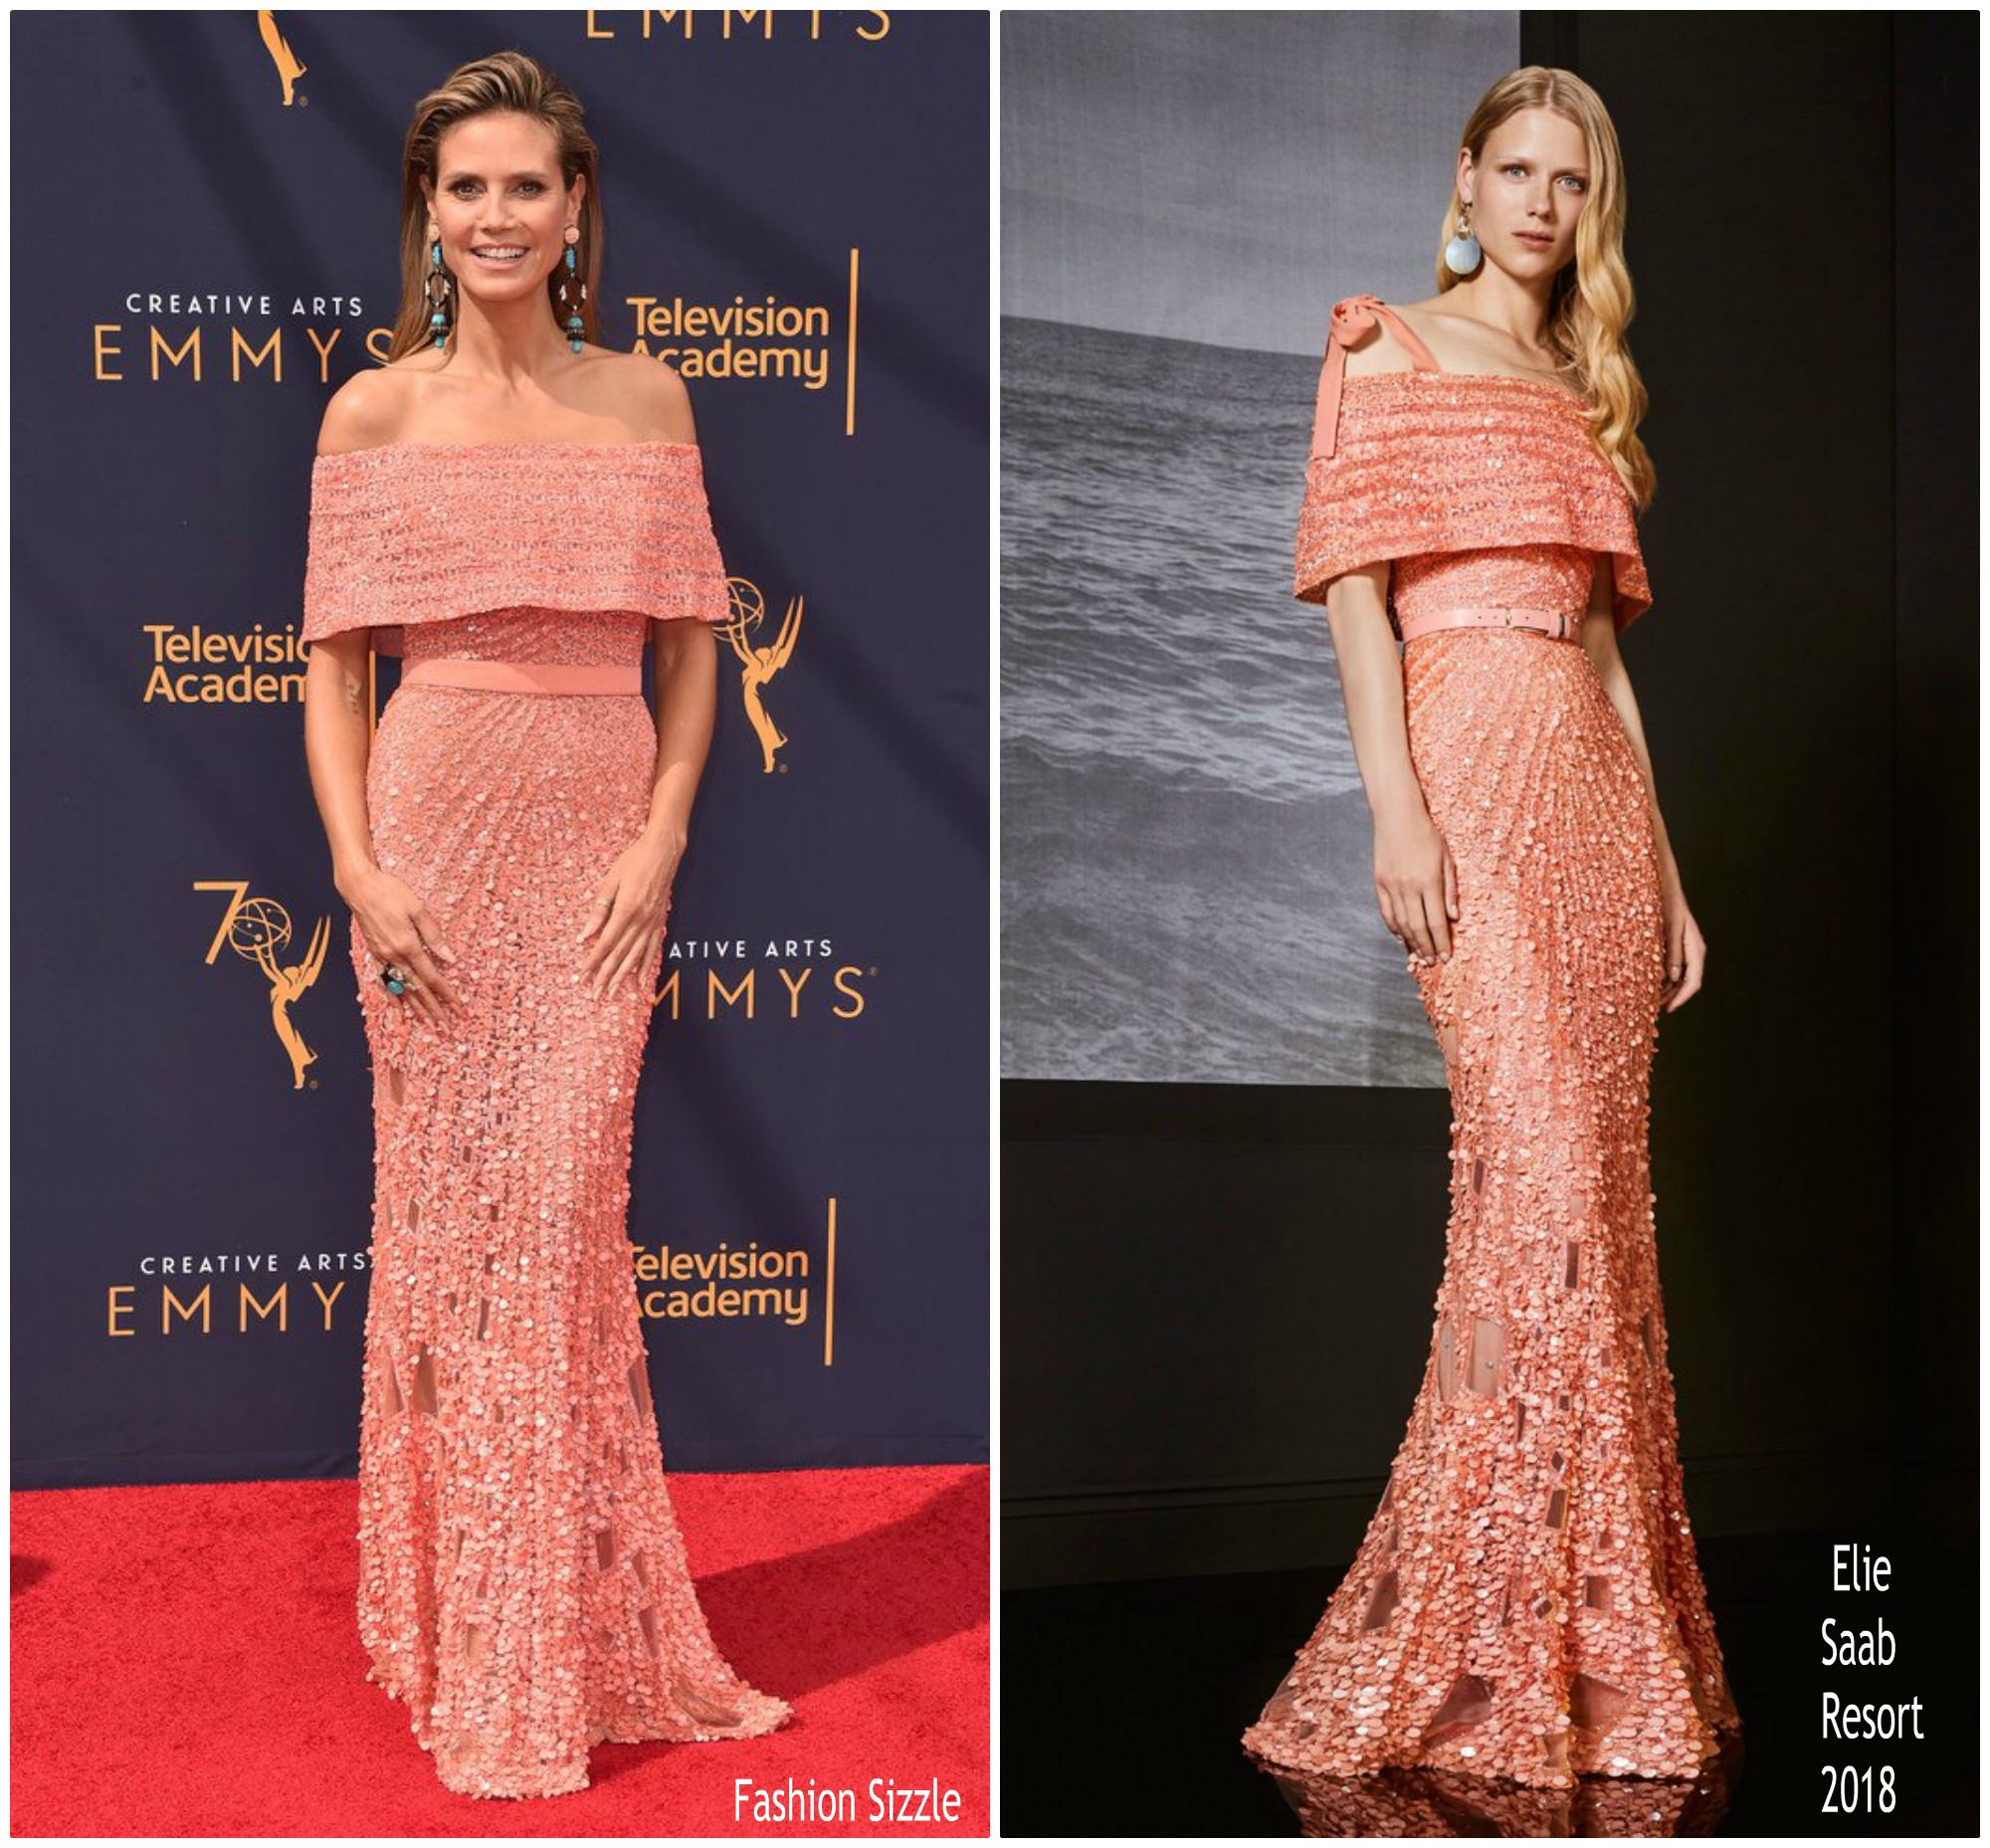 heidi-klum-in-elie-saab-2018-creative-arts0emmy-awards